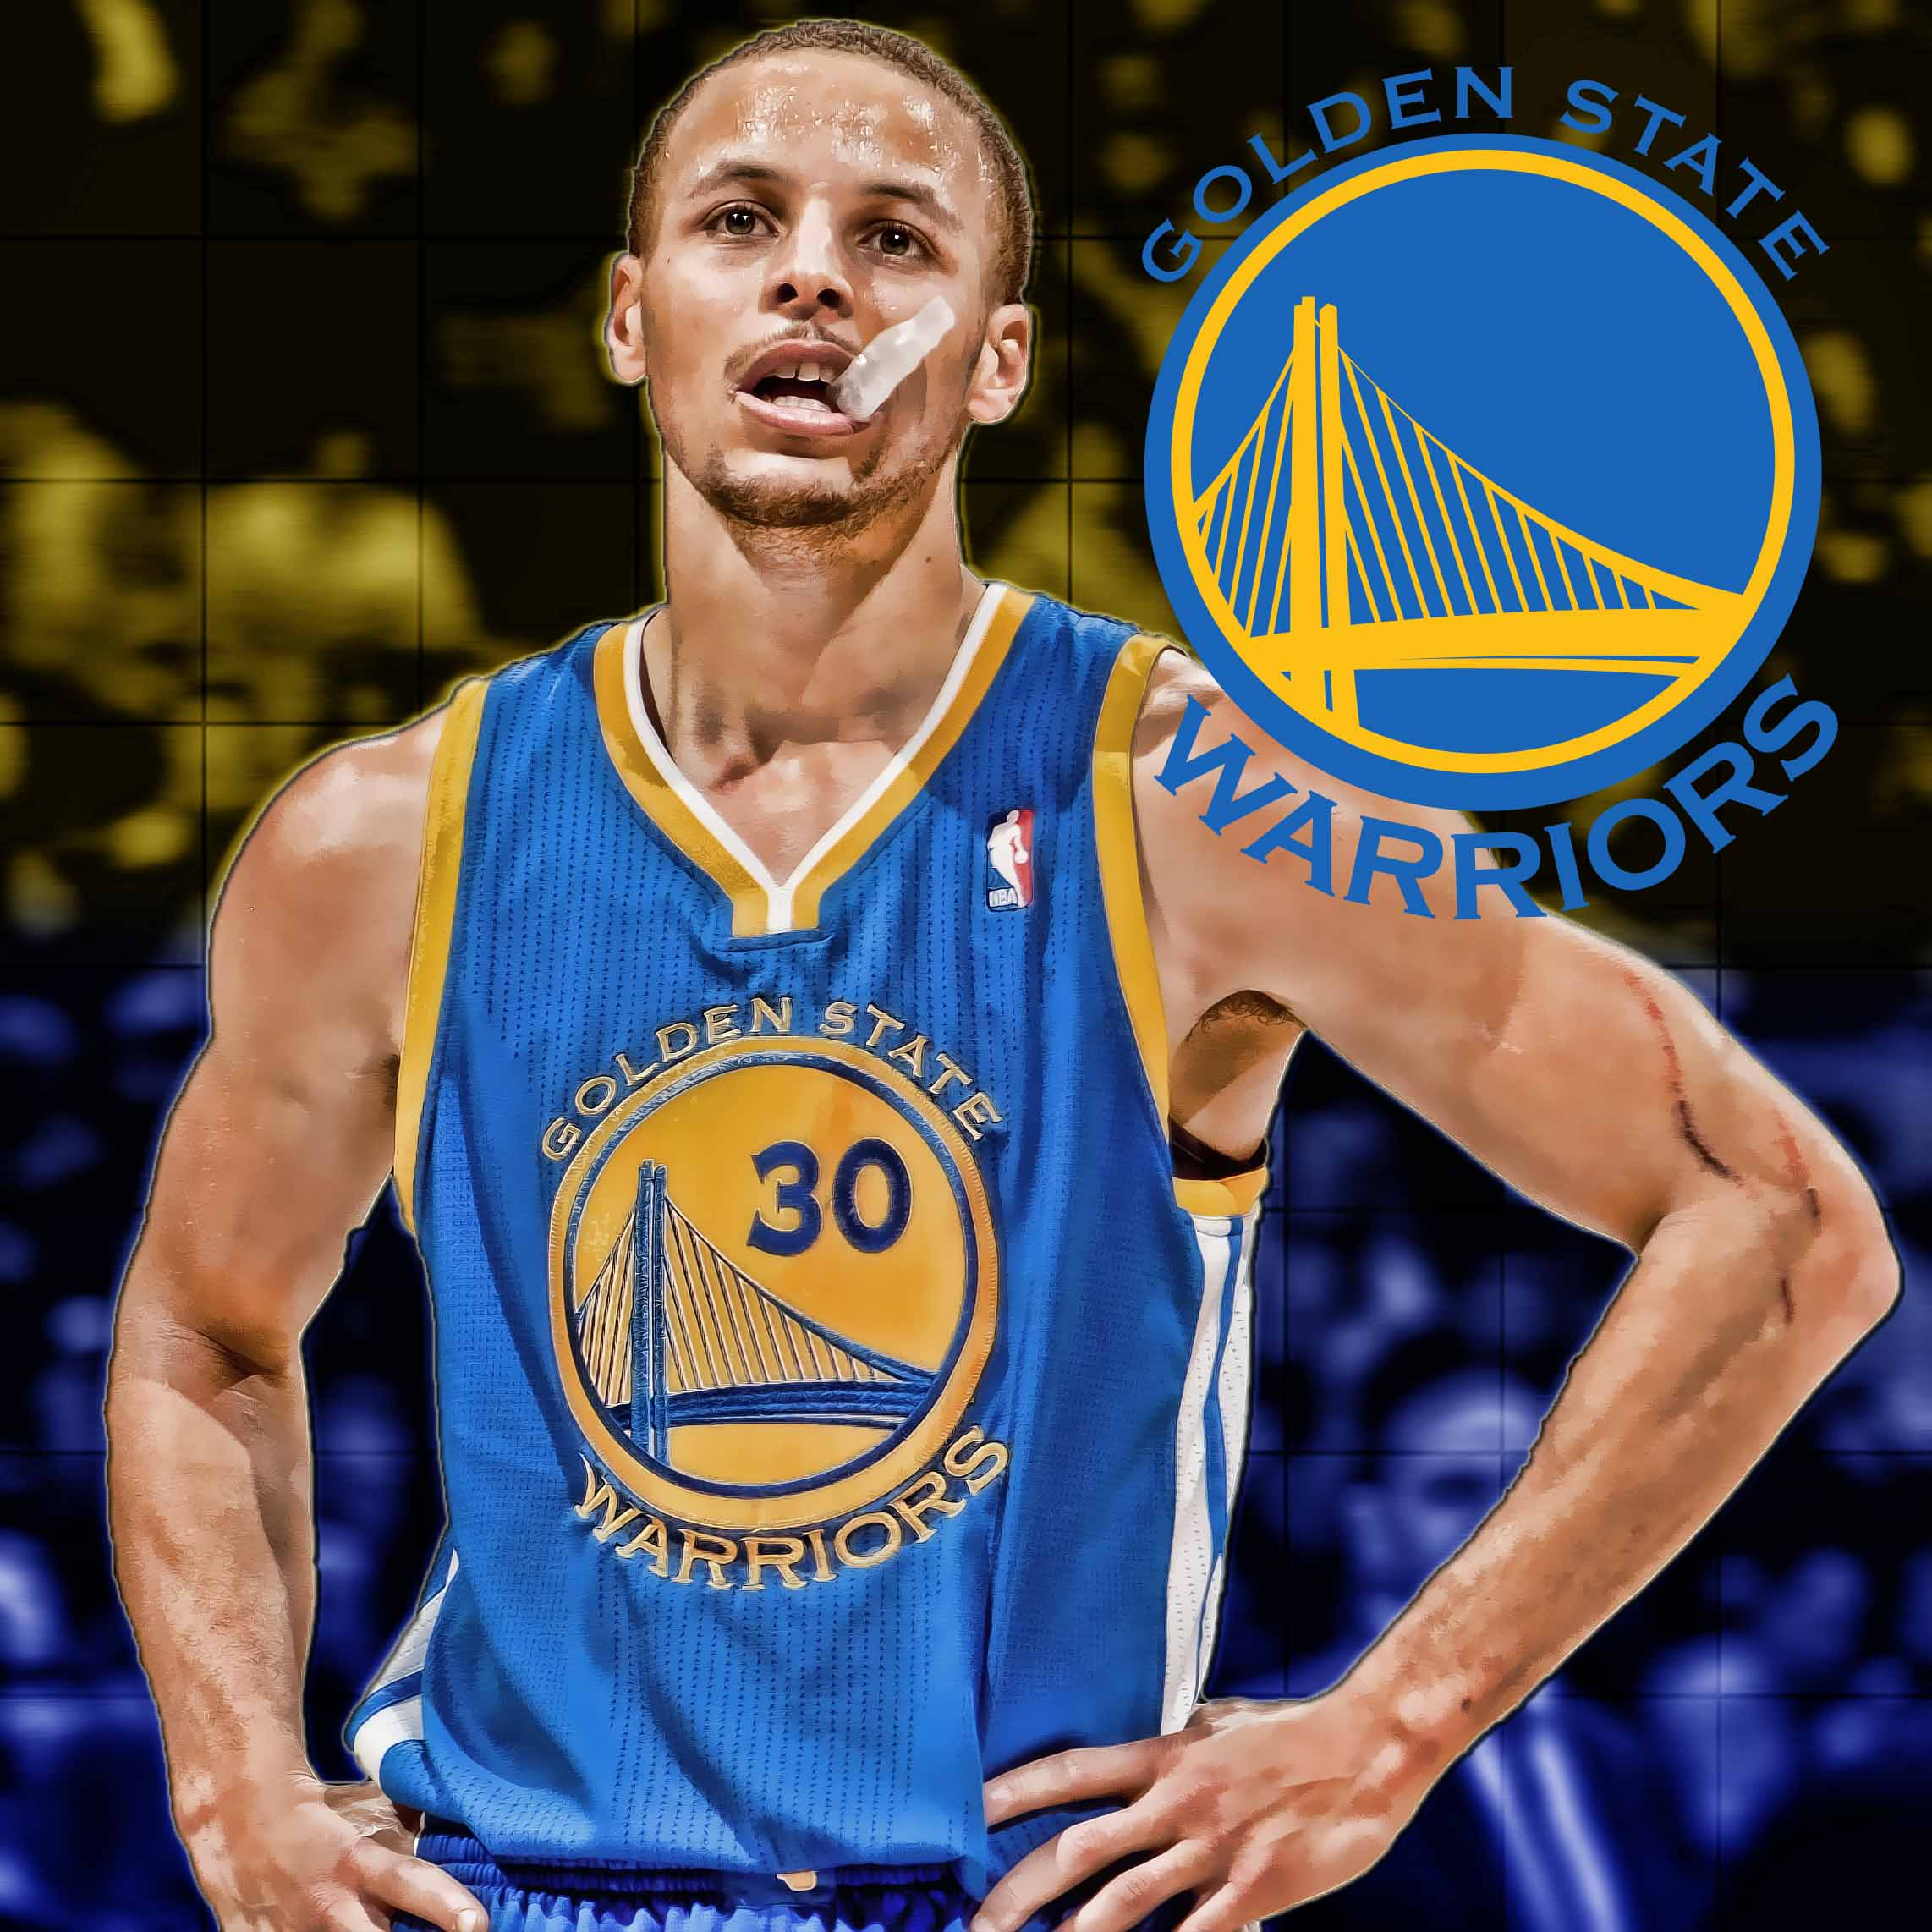 Stephen Curry Wallpaper: (0.05 MHC OR 0.1 MHC EACH) WALLPAPERS, CARDS, AVATARS